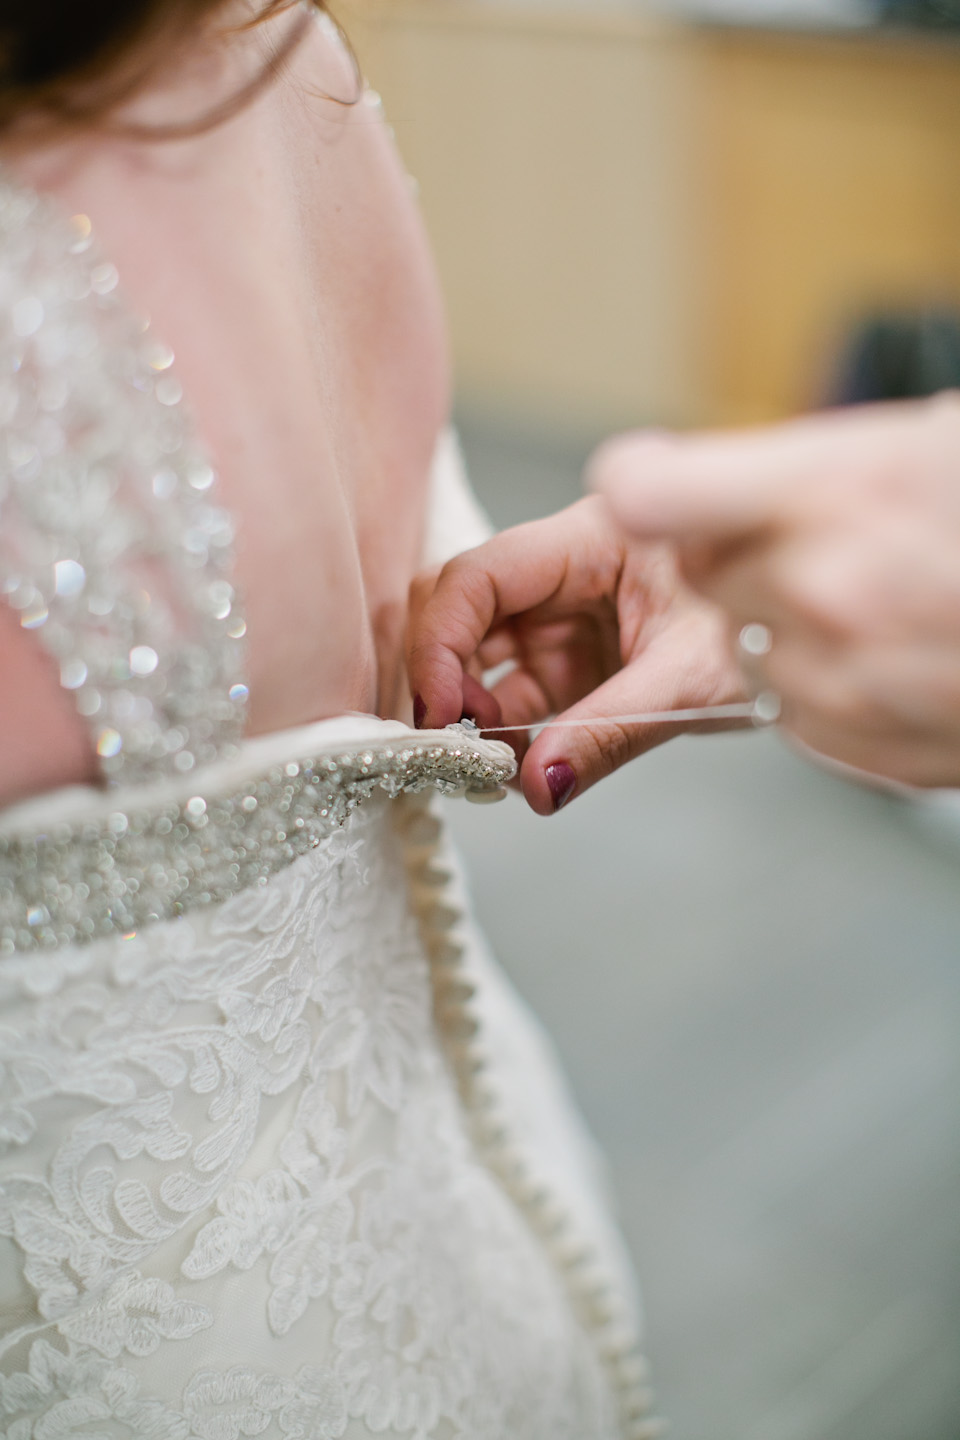 Des Moines bridal stores wedding photography